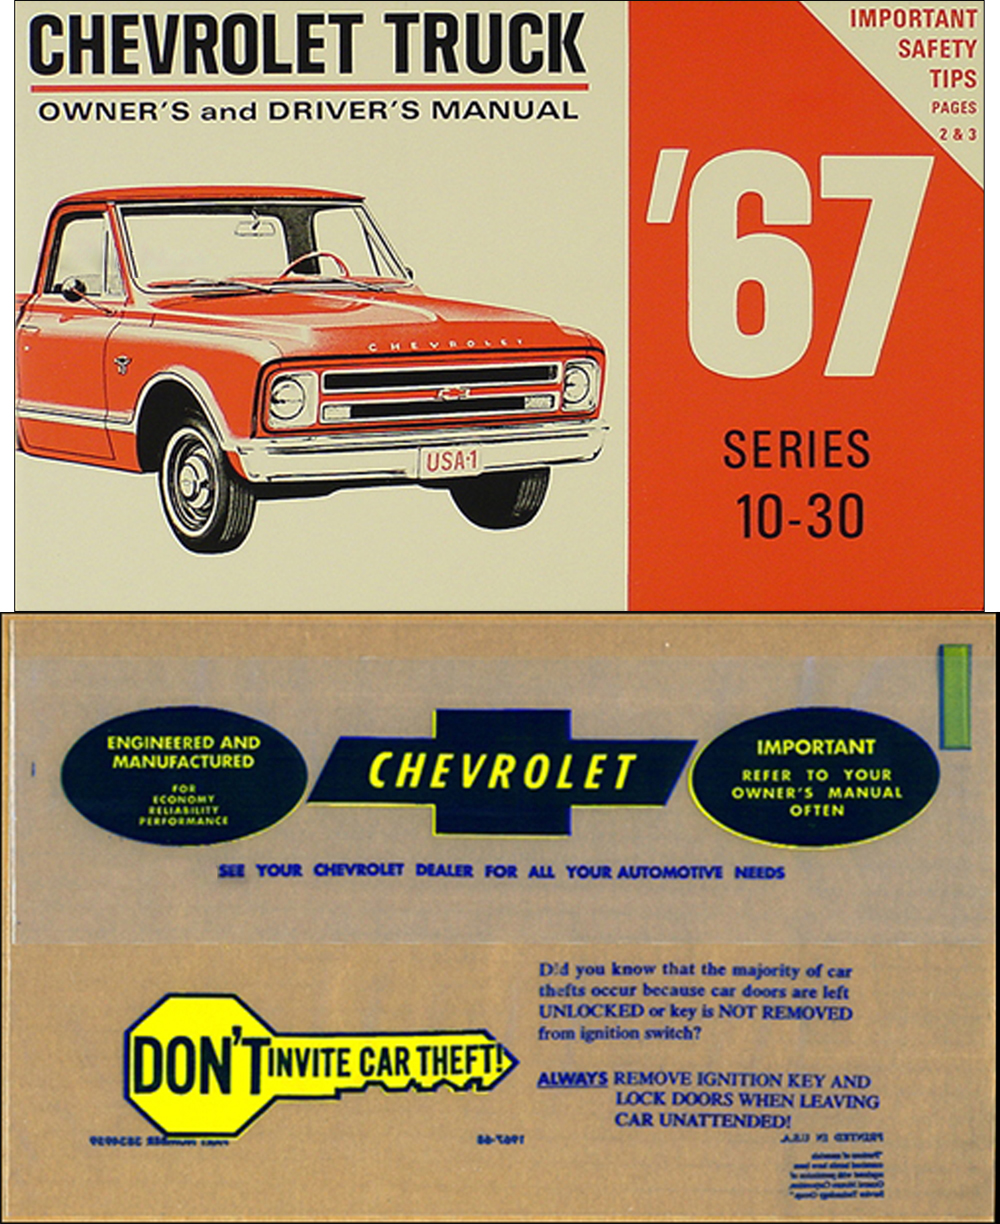 1967 Chevrolet ½-, ¾-, & 1-ton Truck Owner's Manual Package Reprint  Pickup/Suburban/P-Chassis